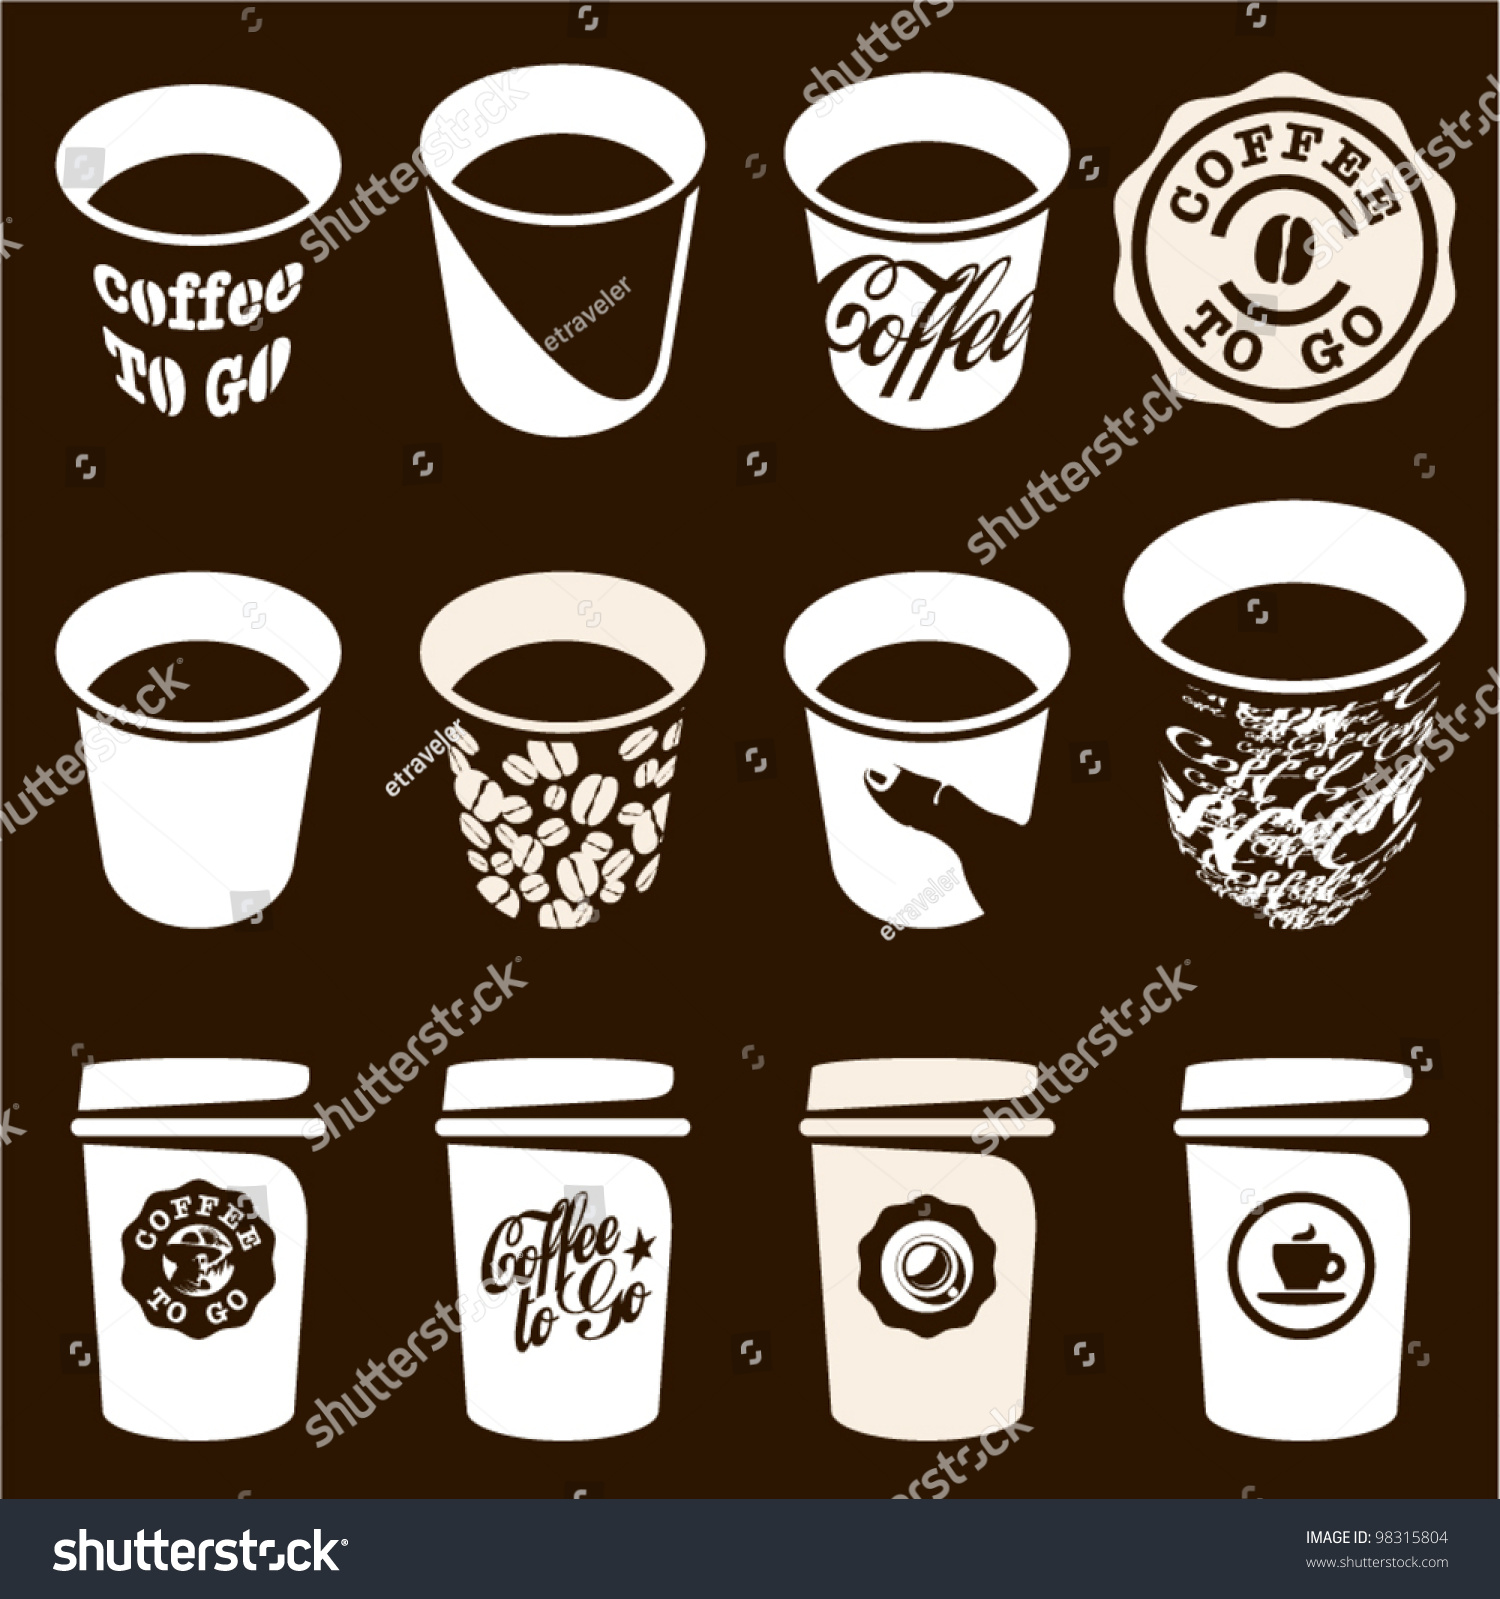 Coffee cup vector free - Coffee To Go Cup Set Coffee Cup Vector Sign Icons Coffee Labels And